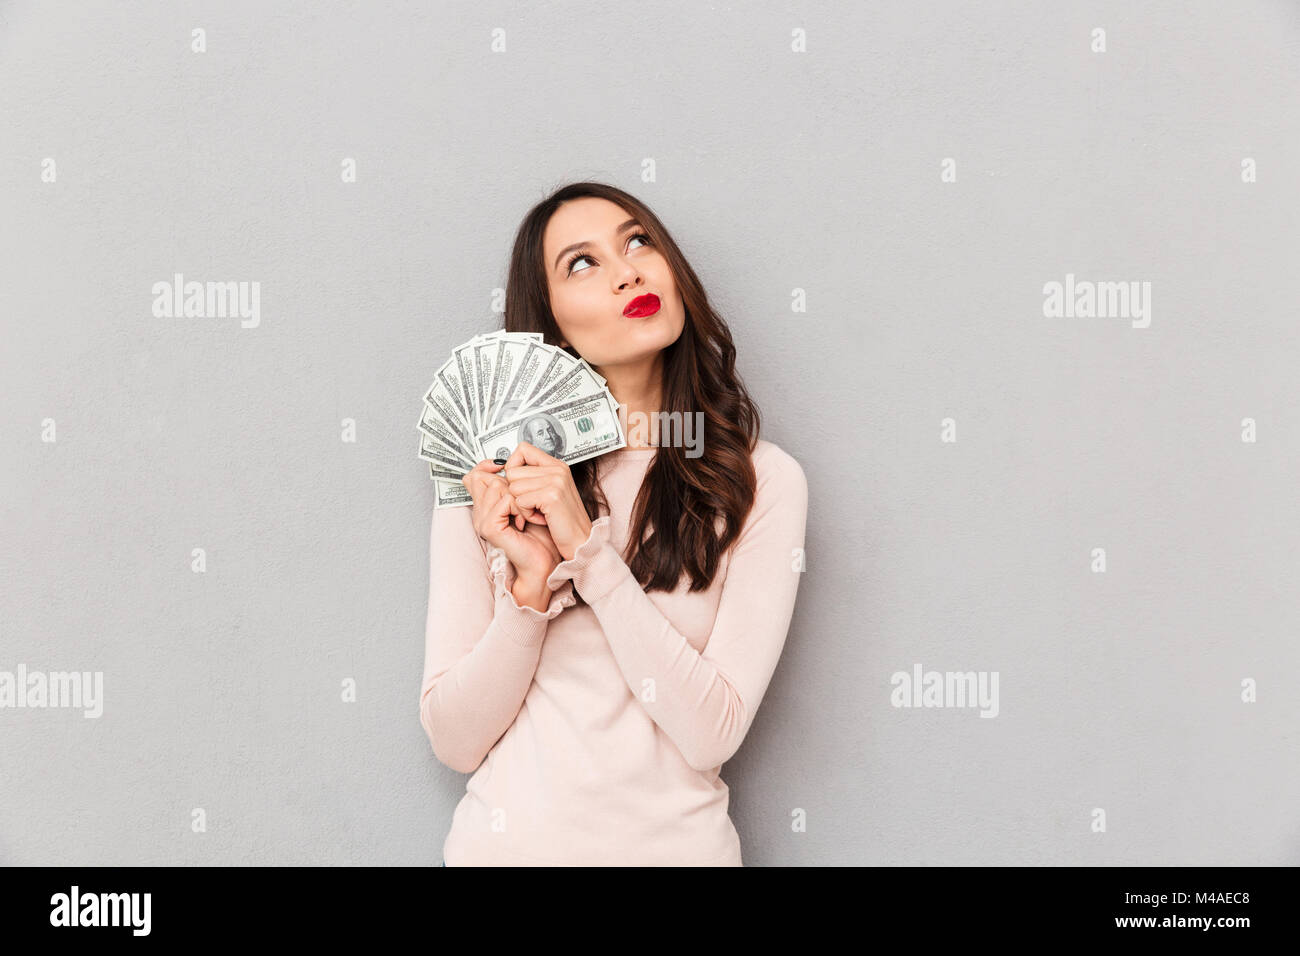 Image of lucky brunette female holding fan of 100 dollar bills being excited to win cash prize, expressing victory - Stock Image